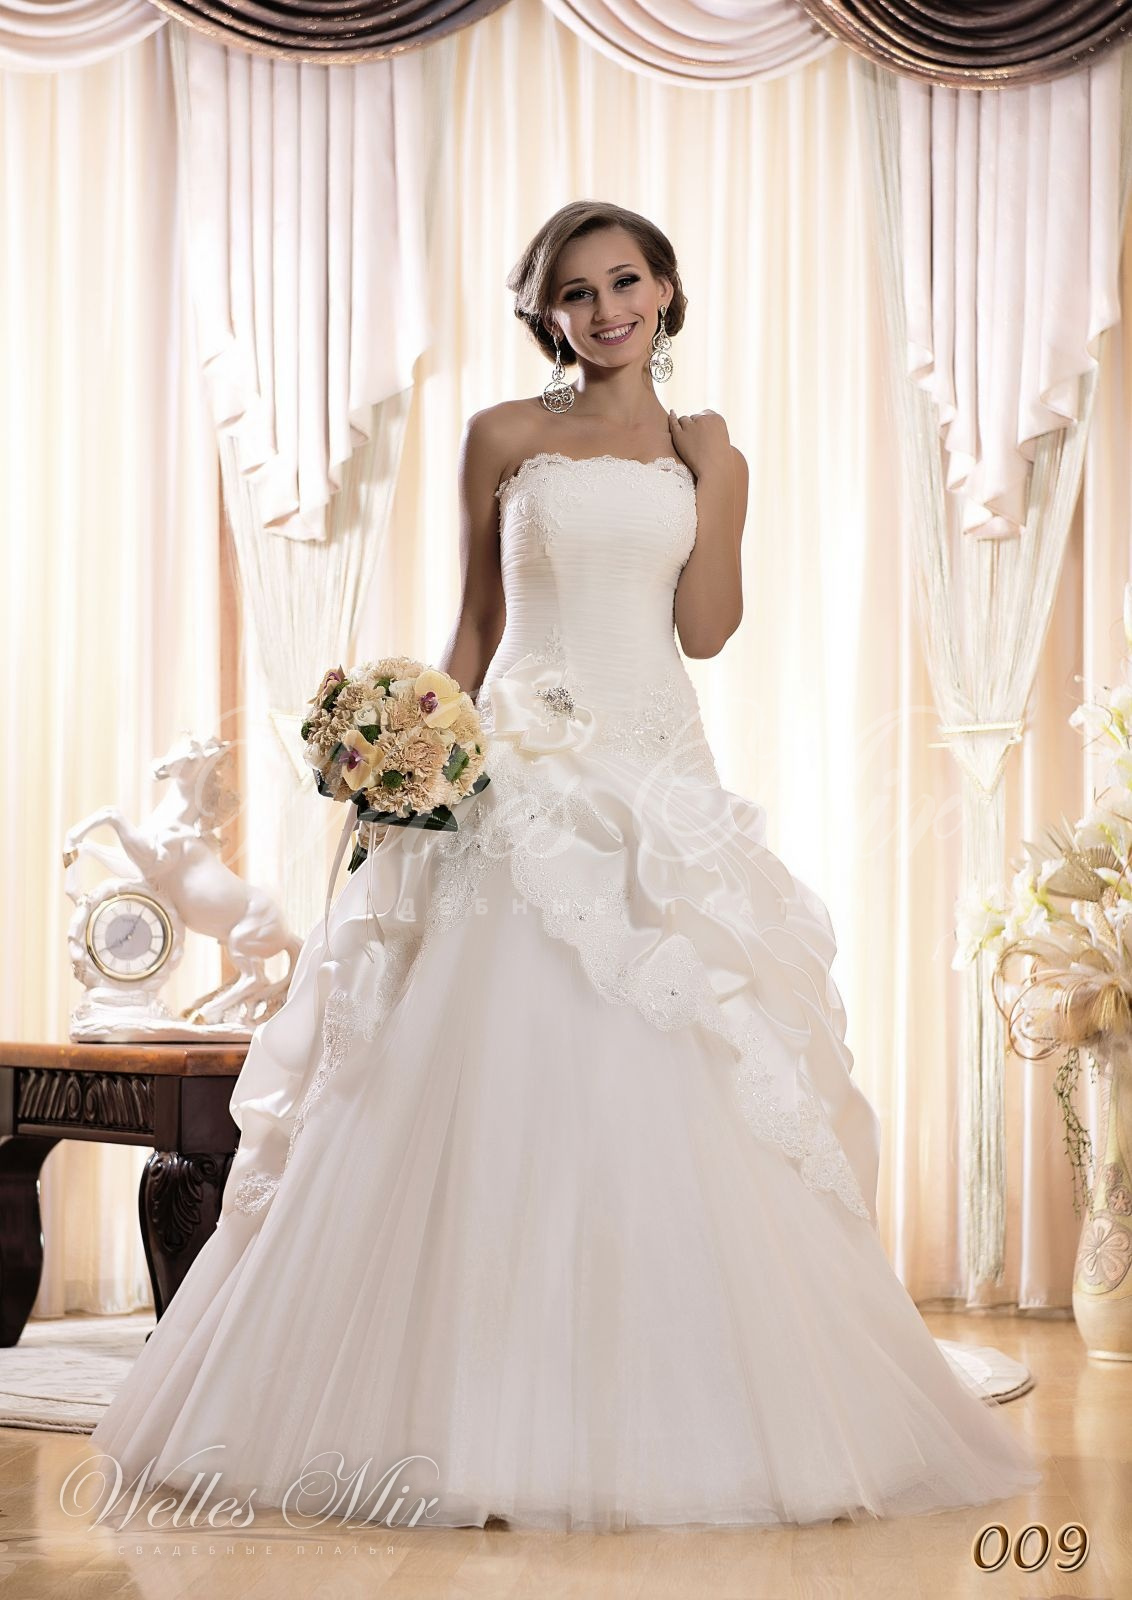 Wedding dresses 009